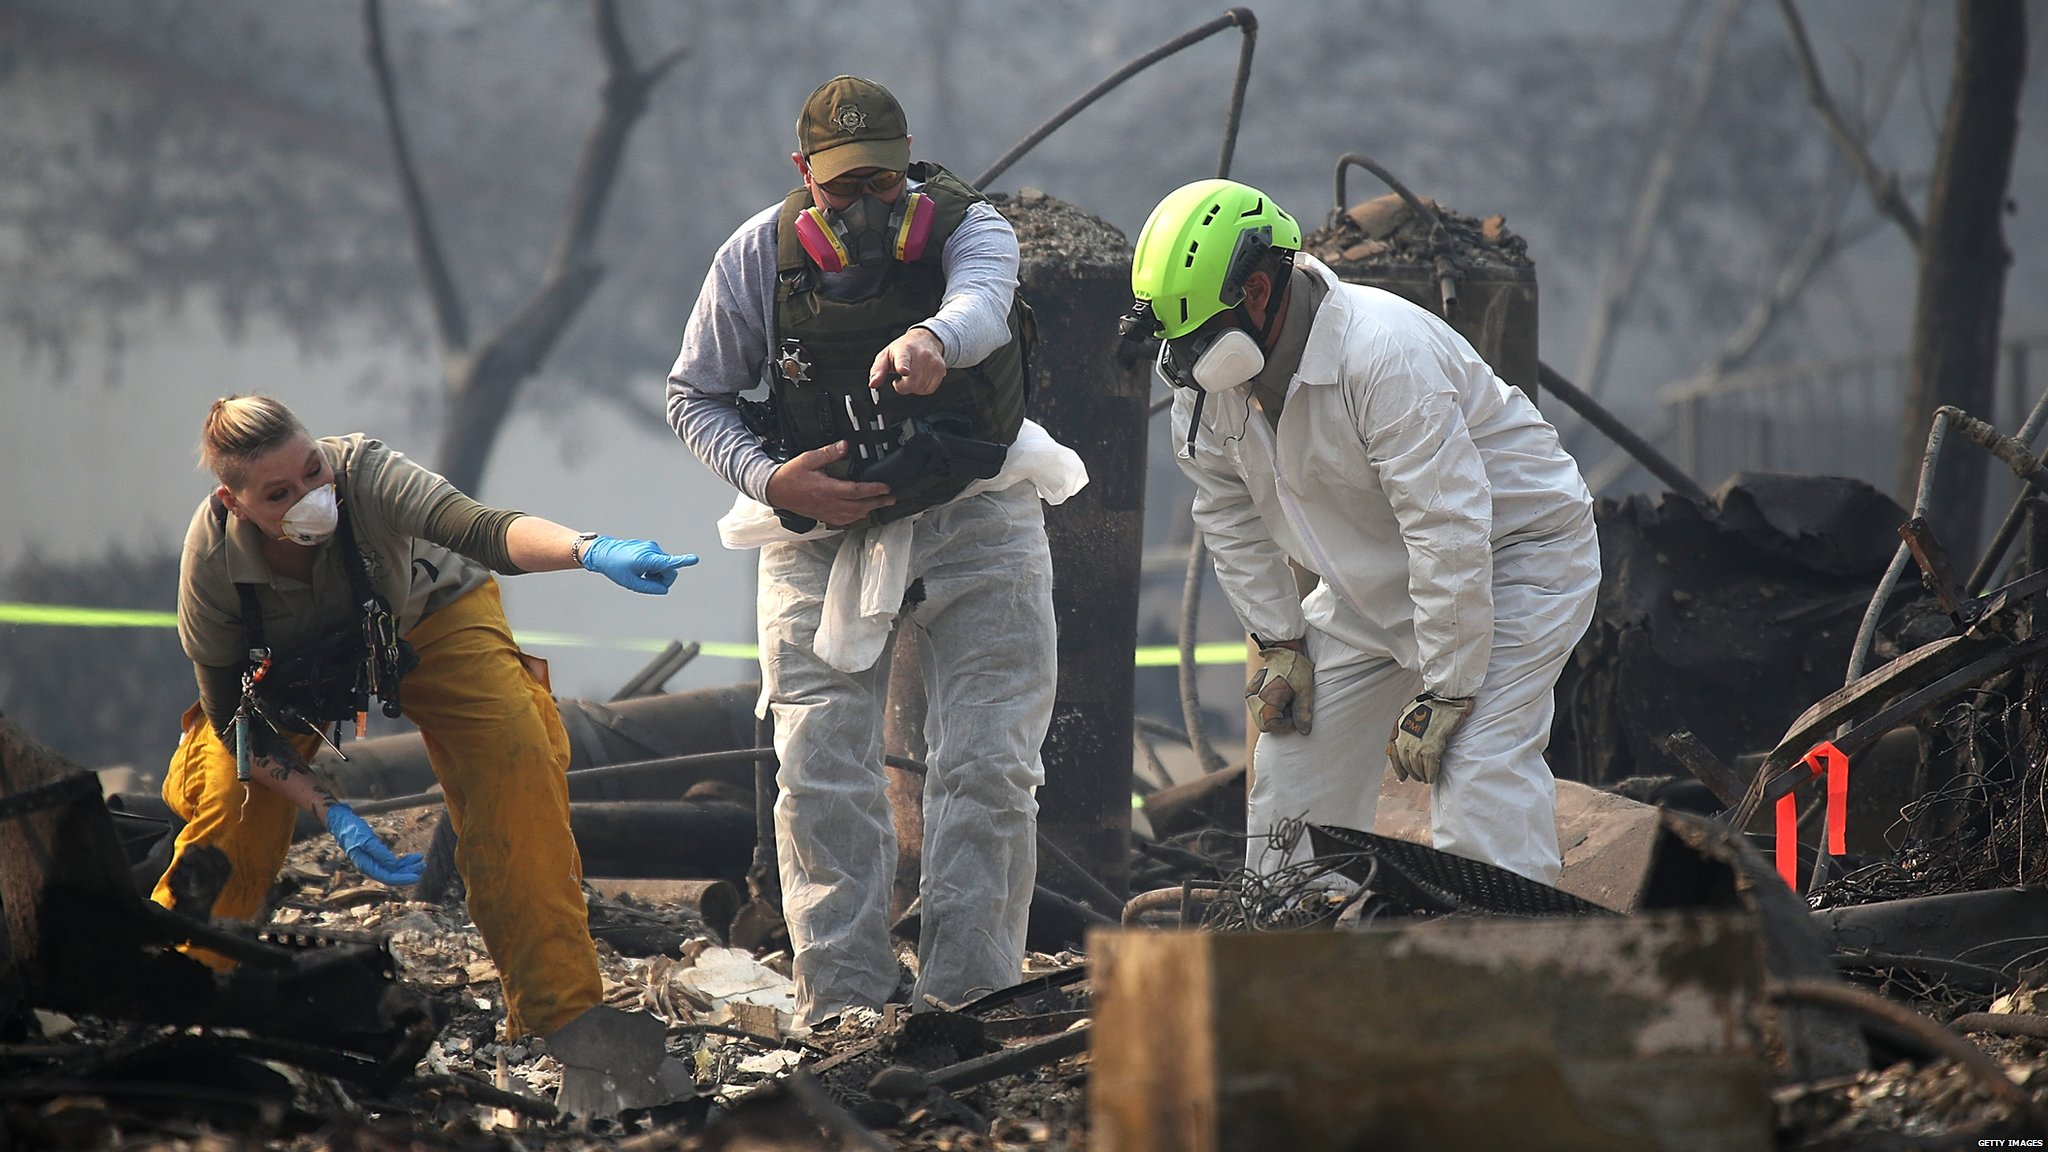 California wildfires: 'More than 1,000 missing' in Camp Fire